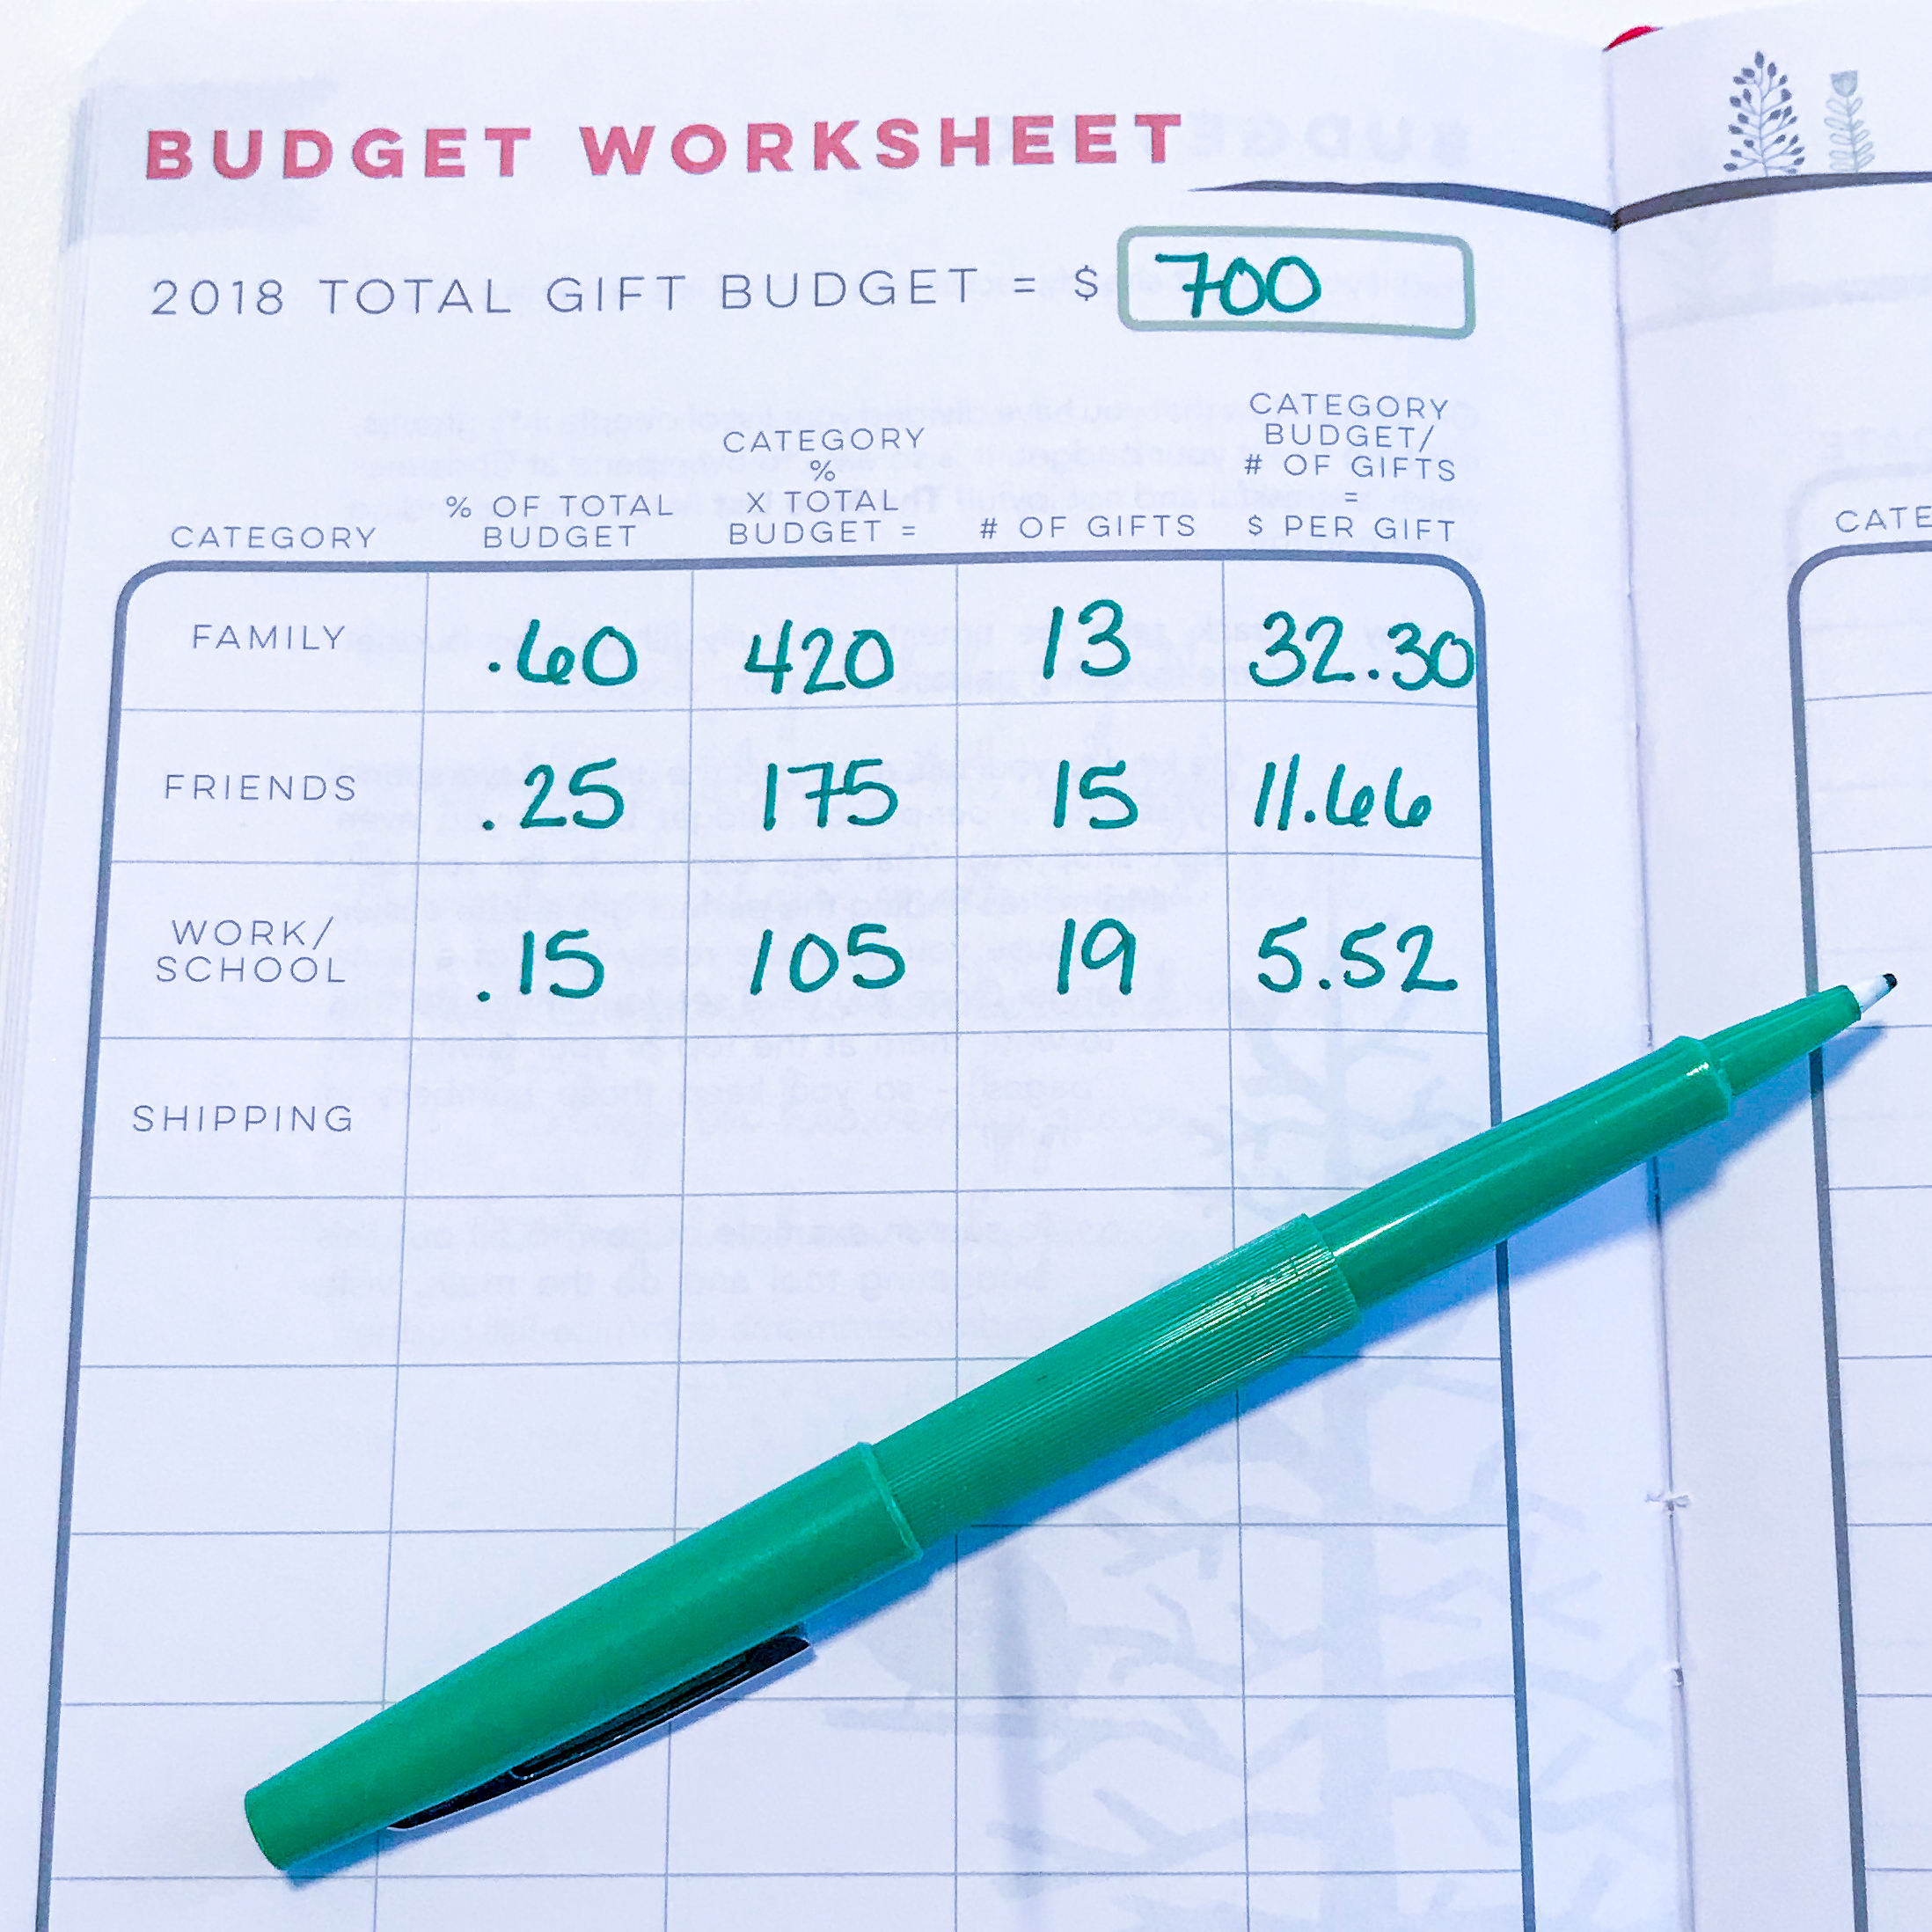 A simple division problem gives you a per-gift budget for each category.